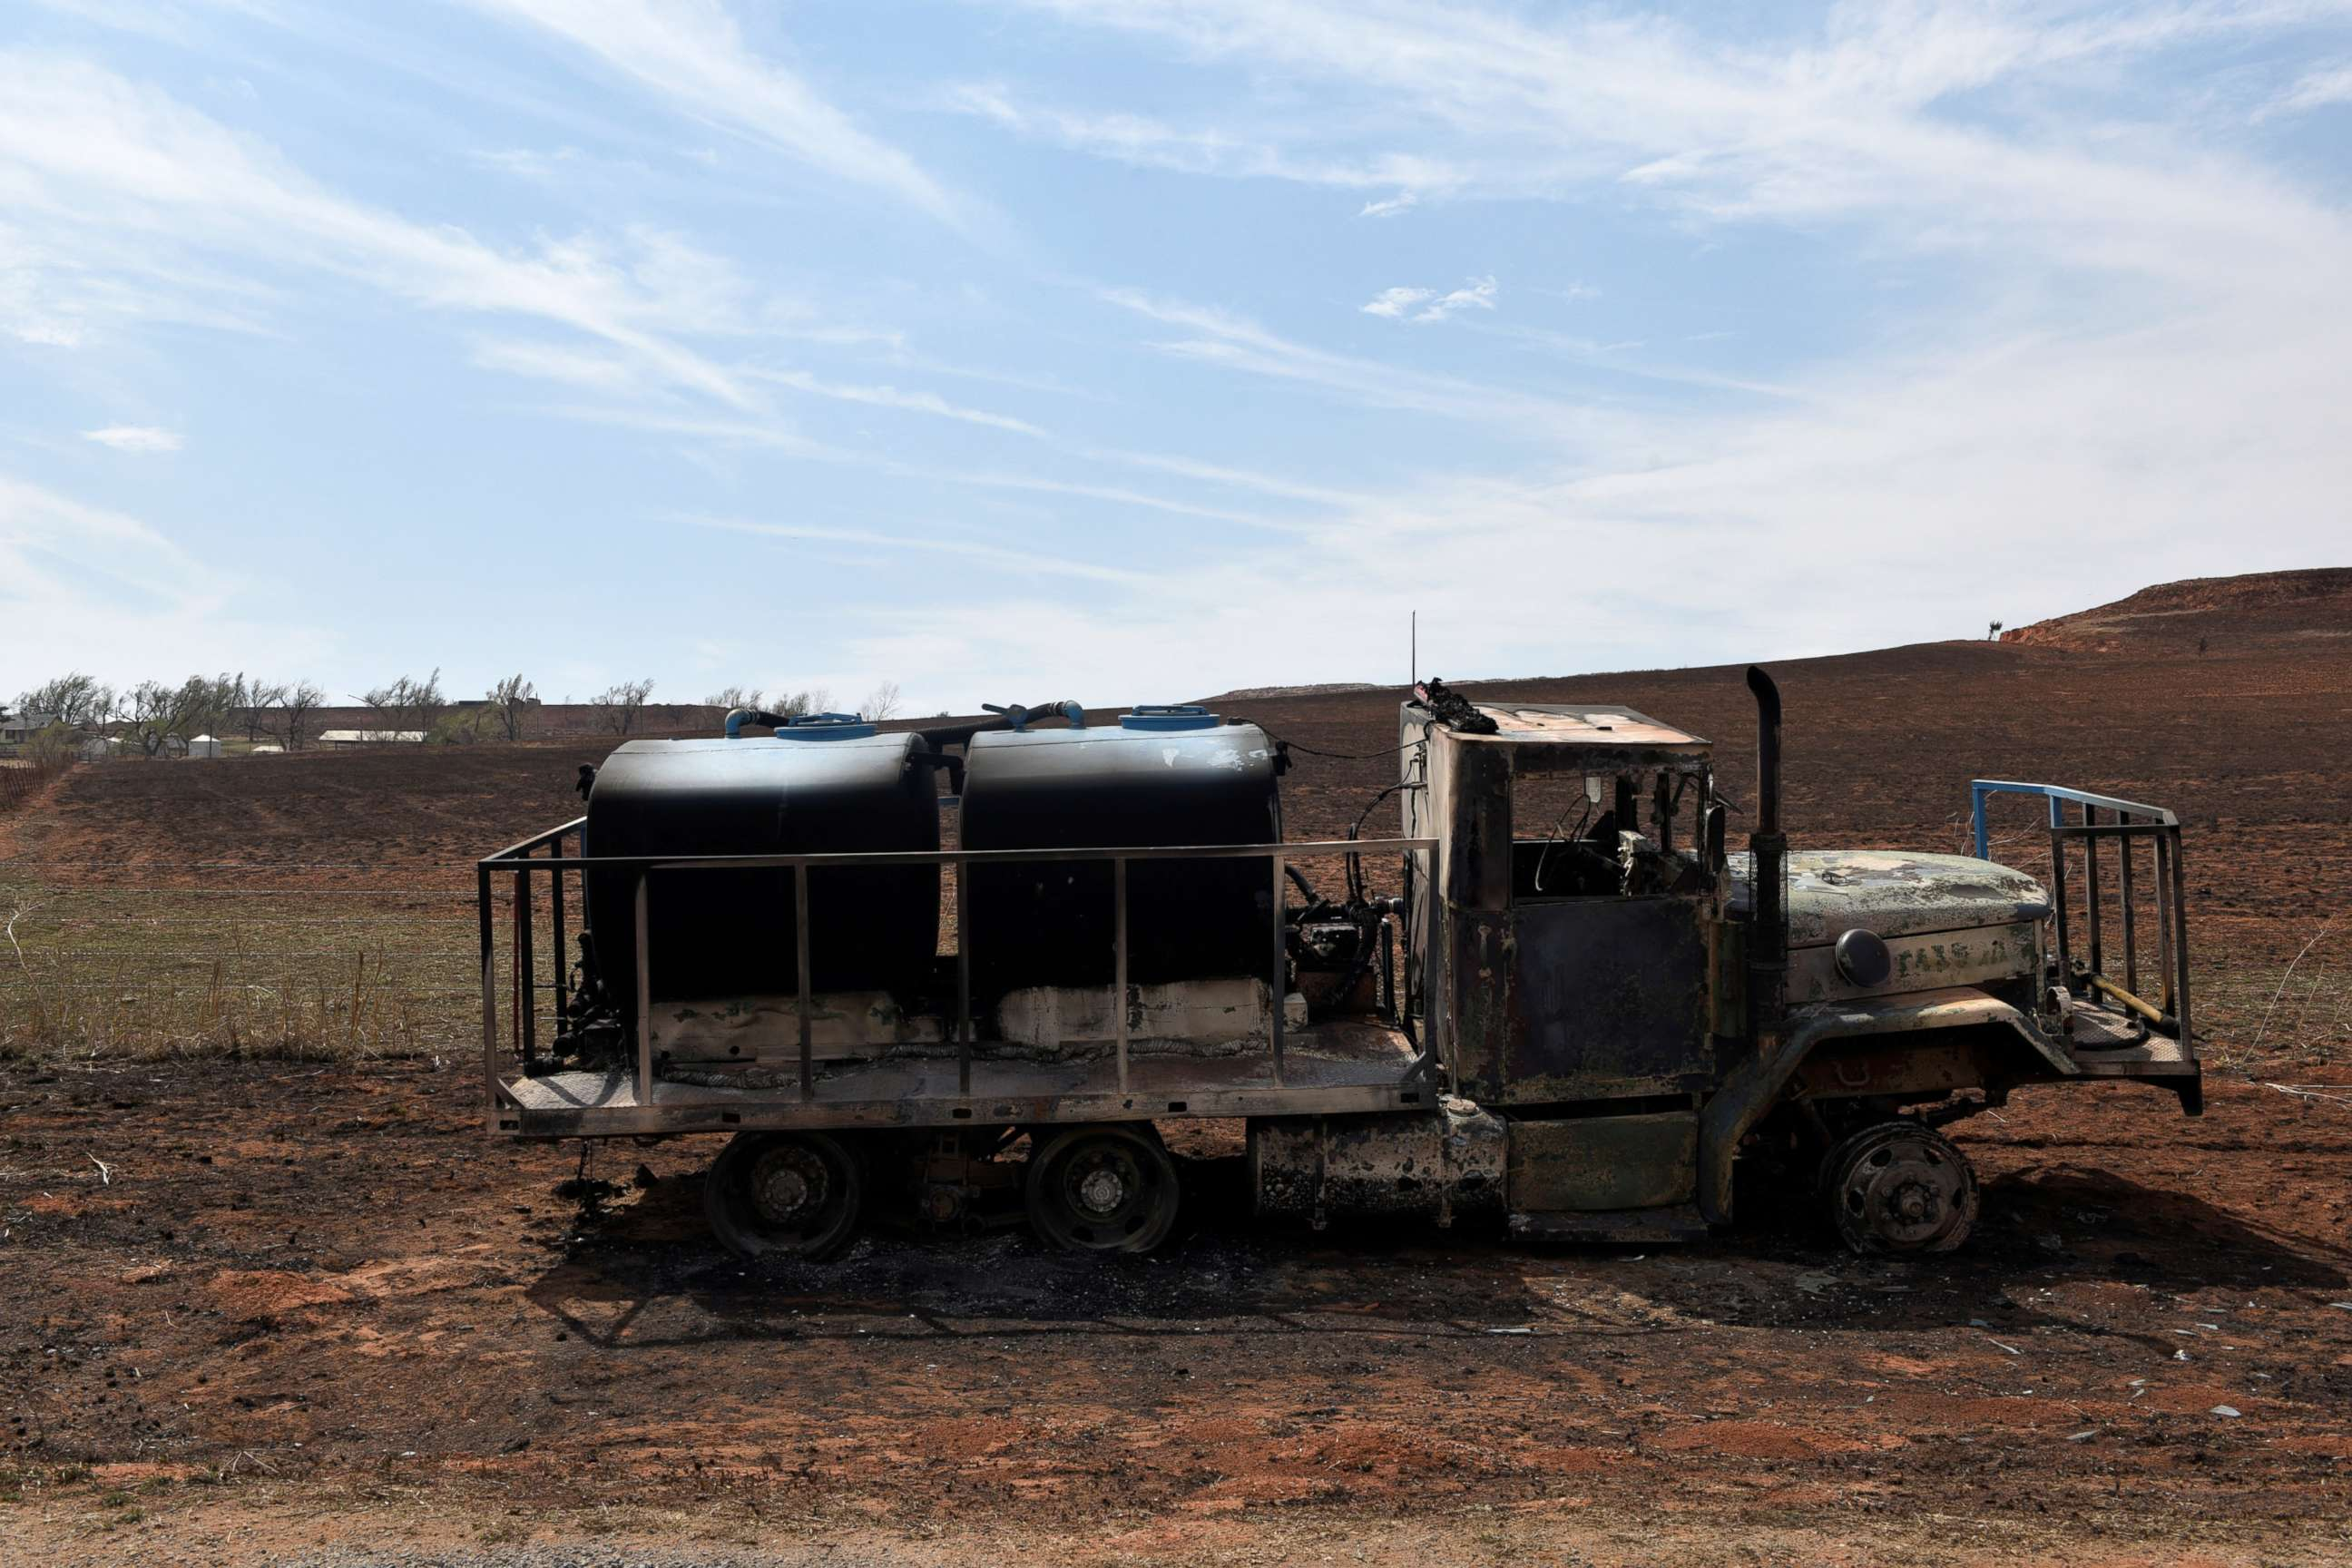 PHOTO: A fire truck that was destroyed by the Rhea fire is seen near Taloga, Oklahoma, April 17, 2018.